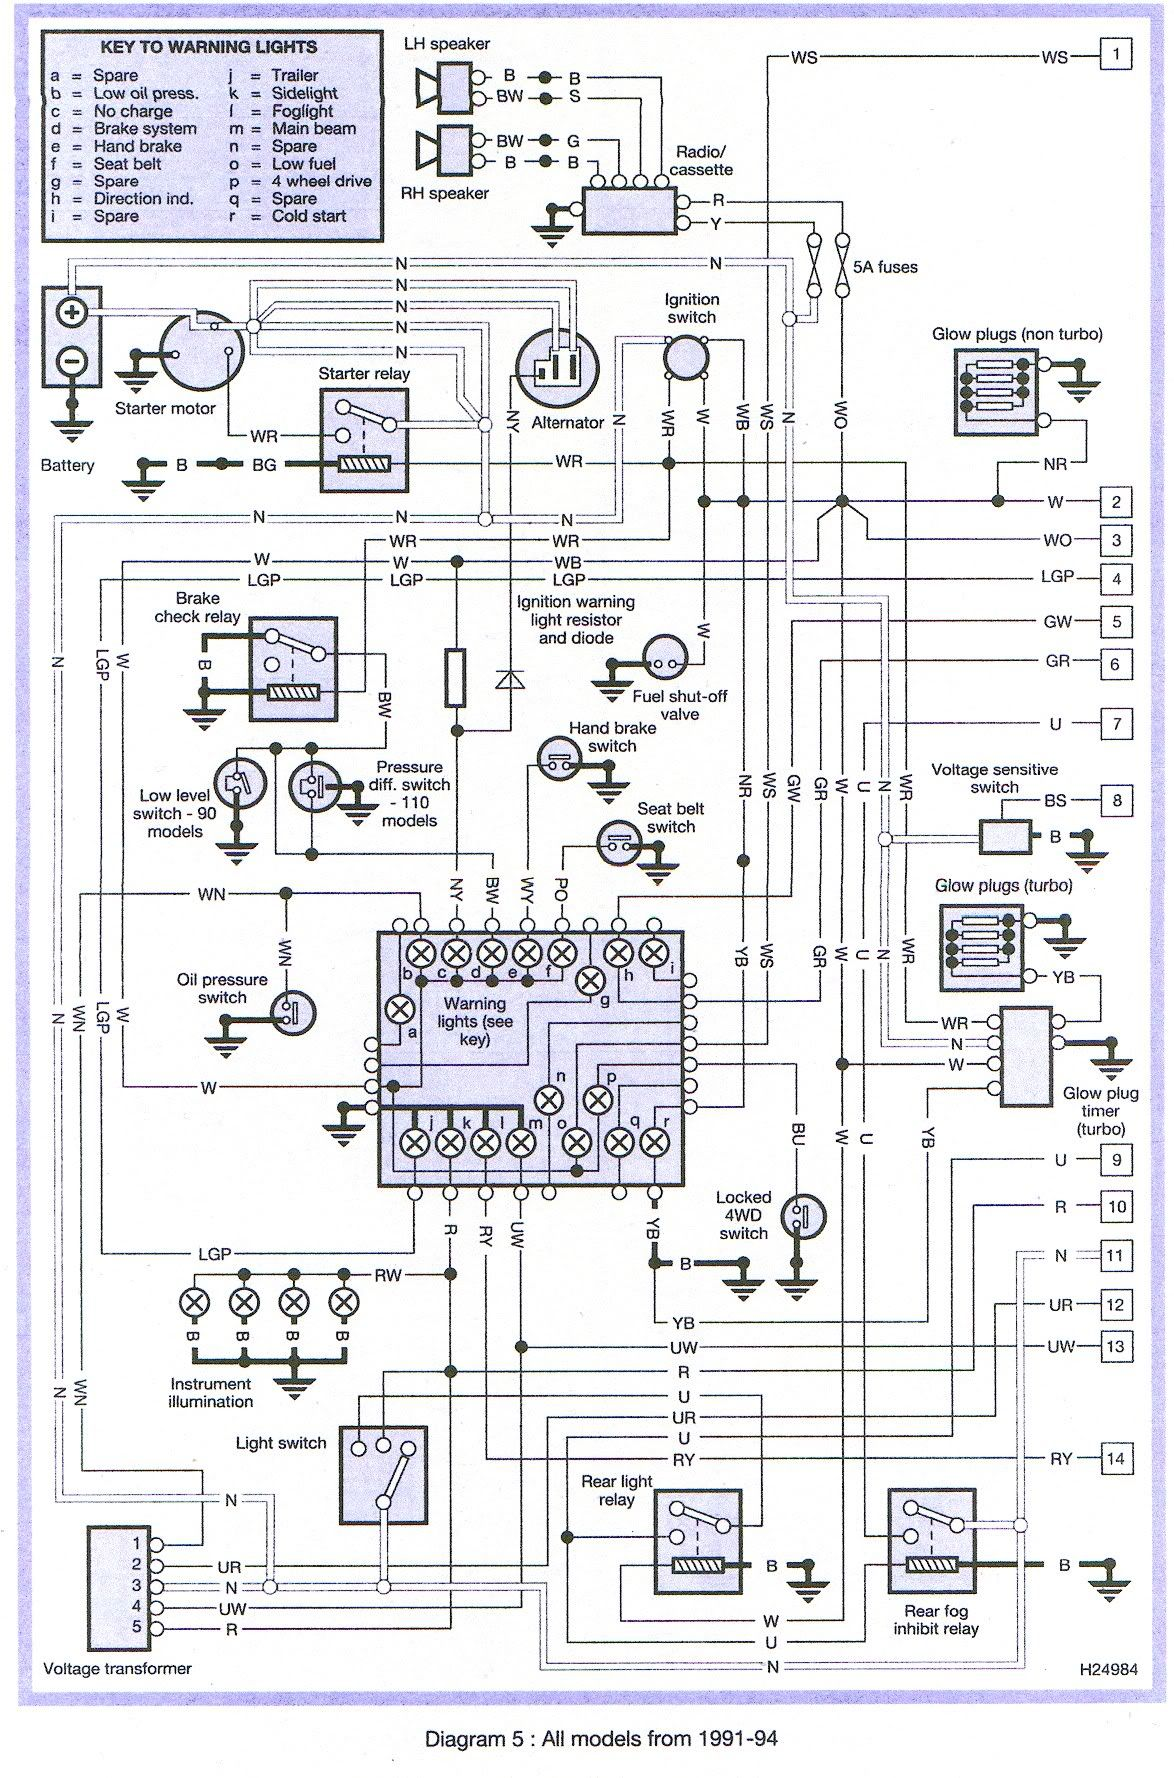 07629544bfff38ad2881b2c21312c6e6 land rover discovery wiring diagram manual repair with engine Land Rover Discovery 1 at gsmportal.co